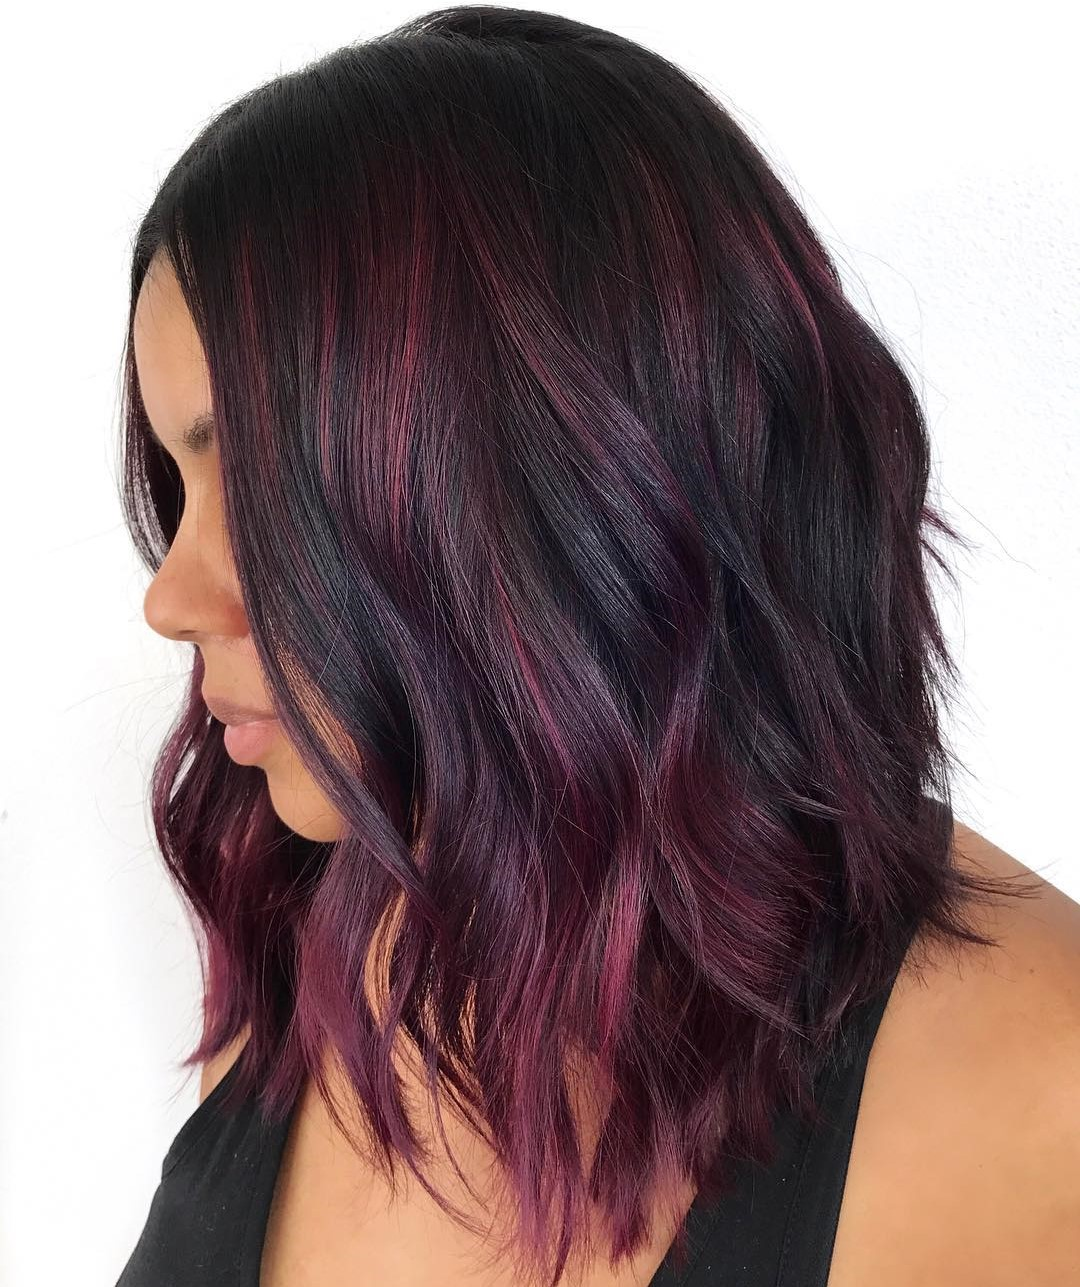 Beachy Black Lob with Burgundy Highlights